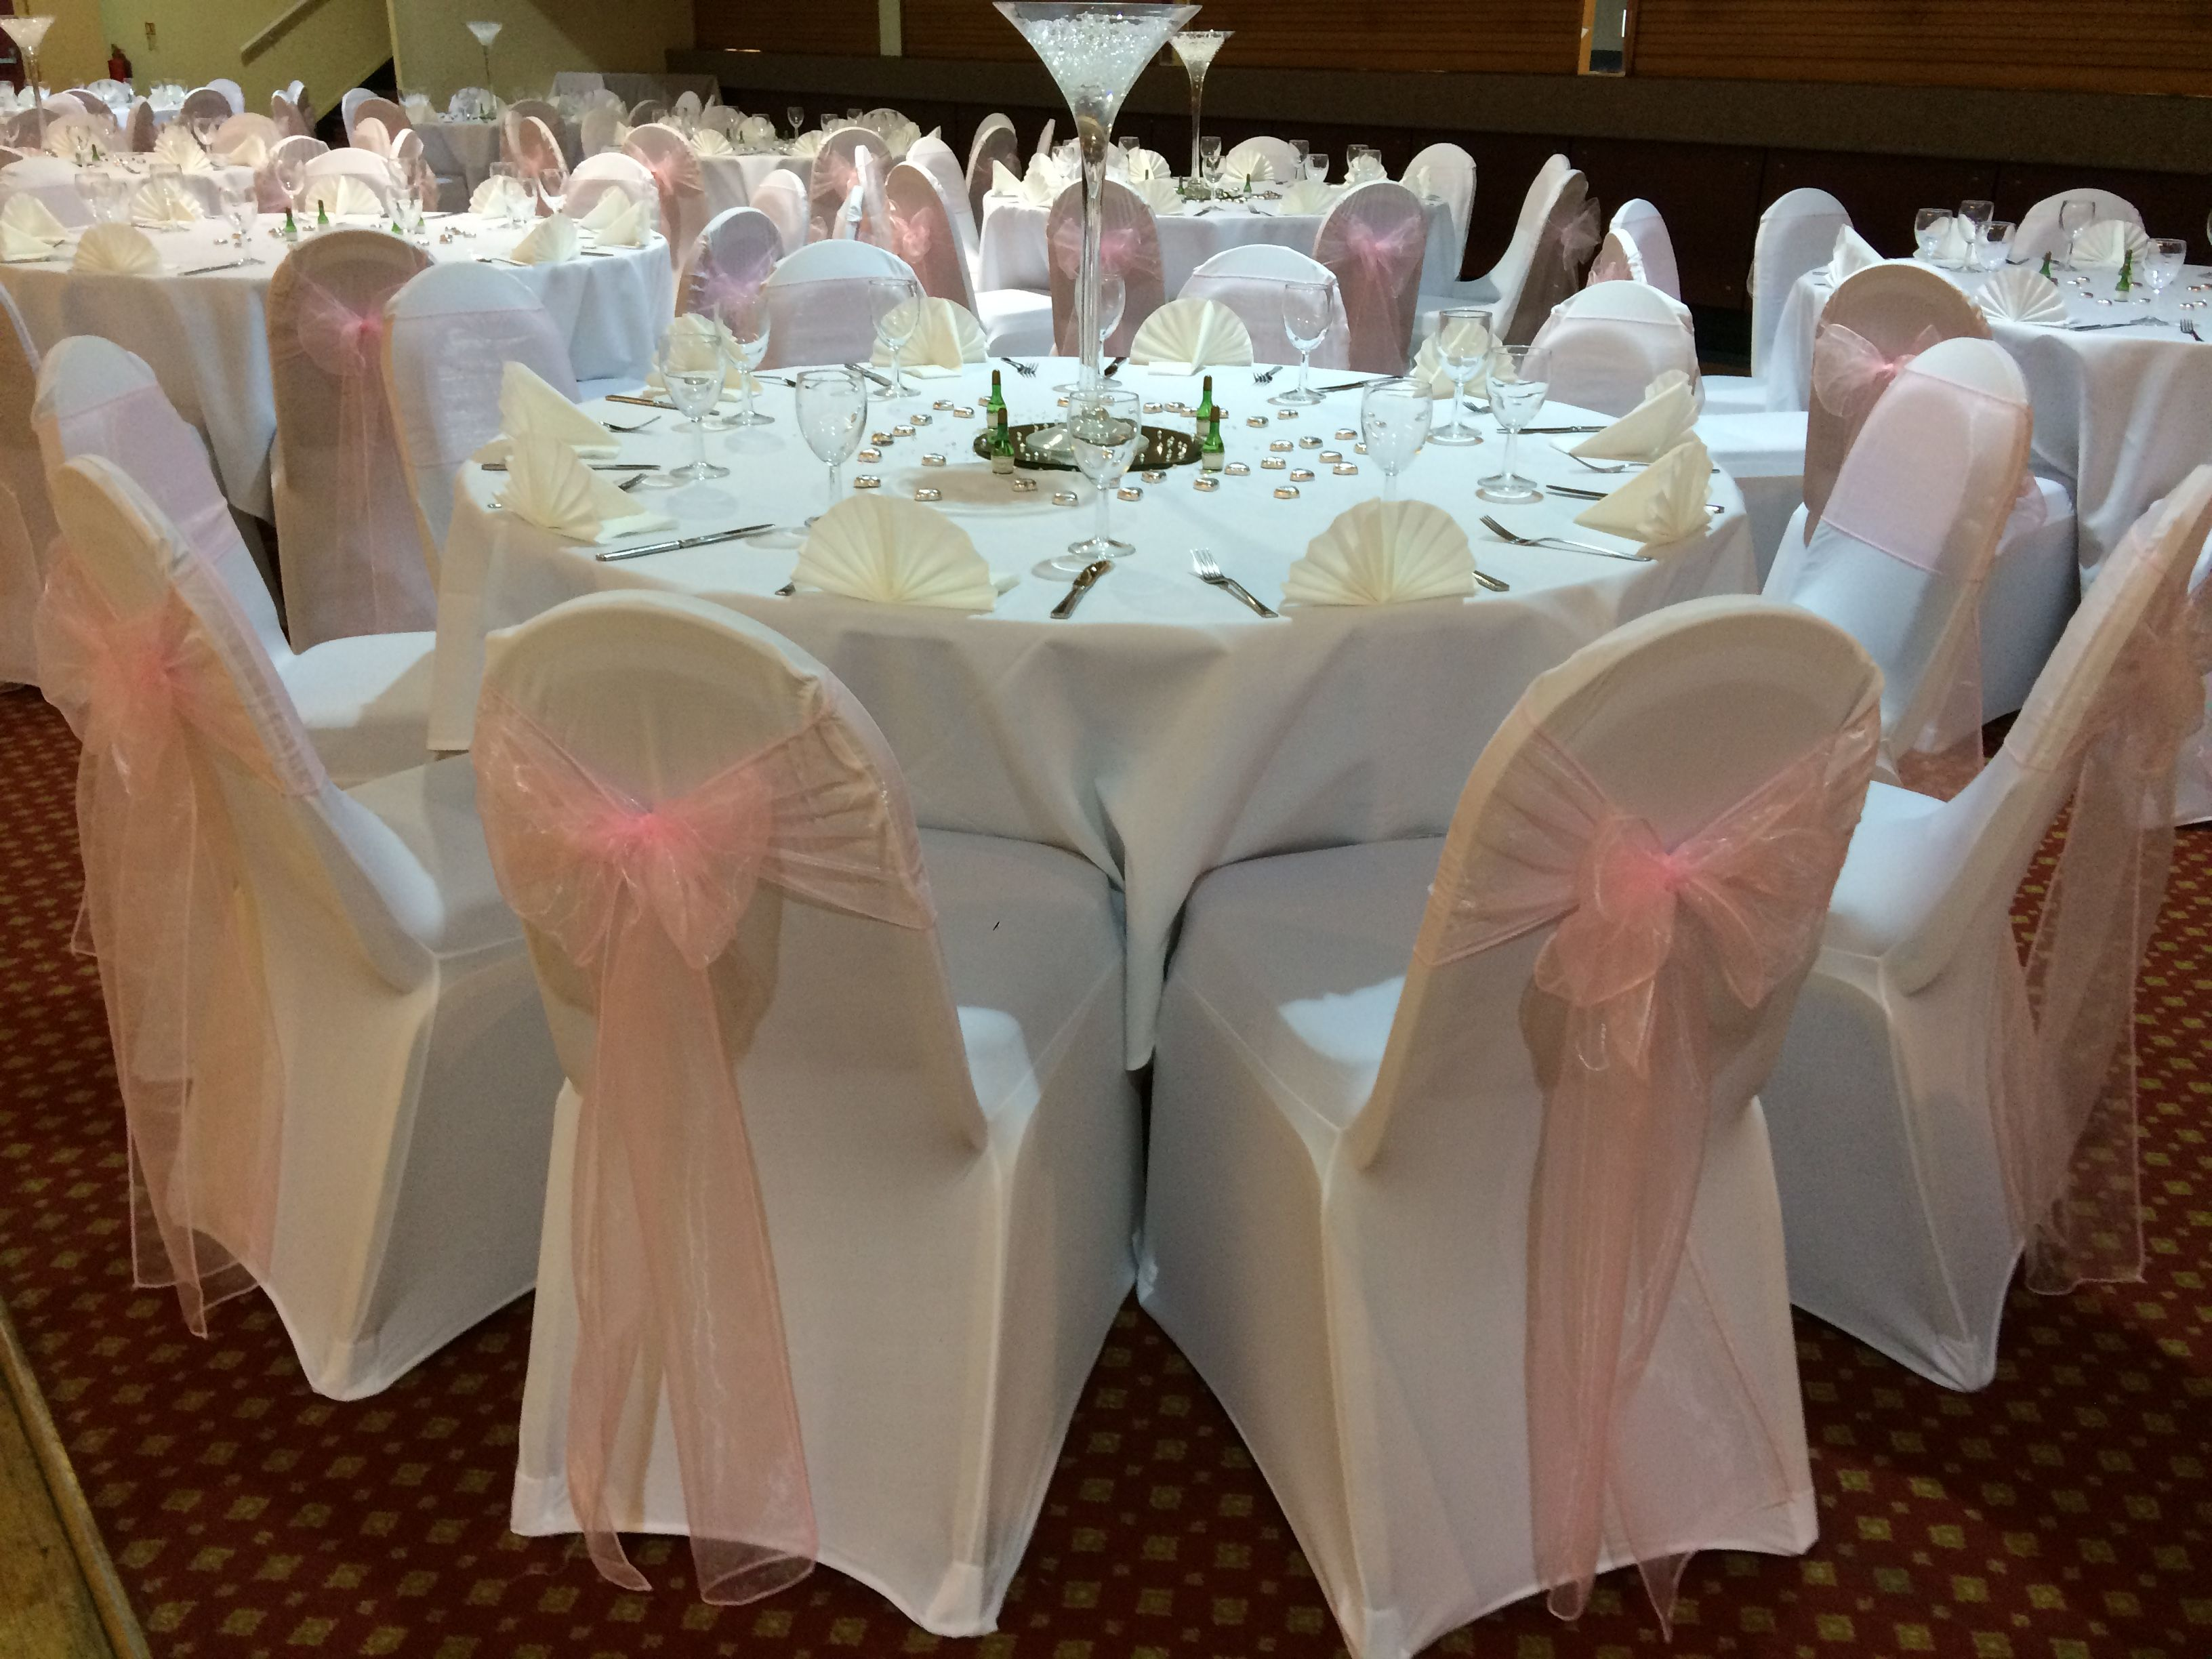 Blush Chair Sashes Wheelchair Brands White Covers With Pale Pink Organza At A